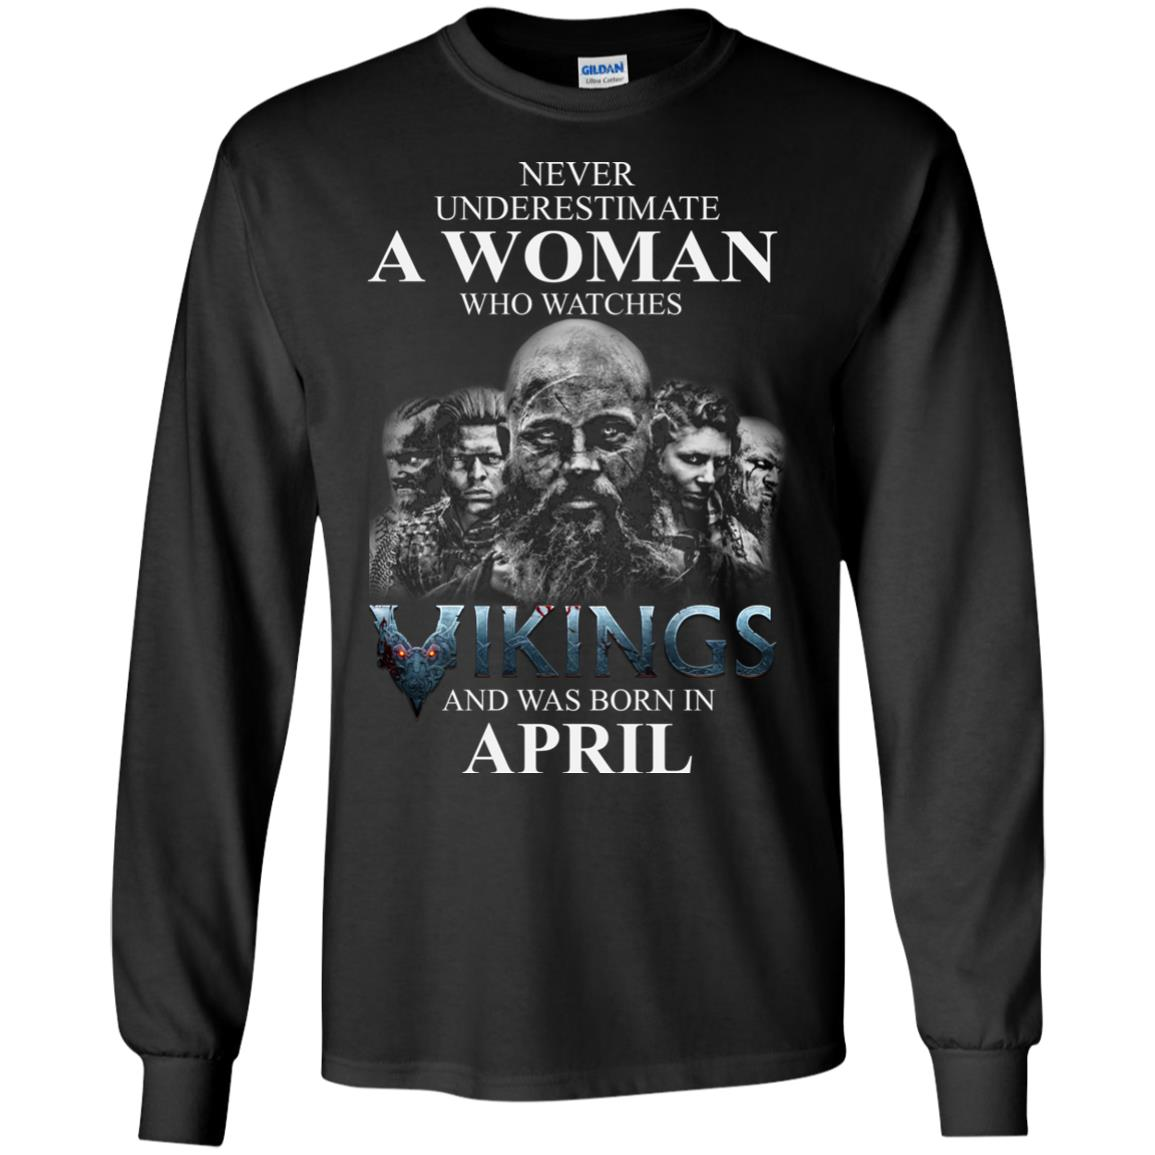 image 1317 - Never Underestimate A woman who watches Vikings and was born in April shirt